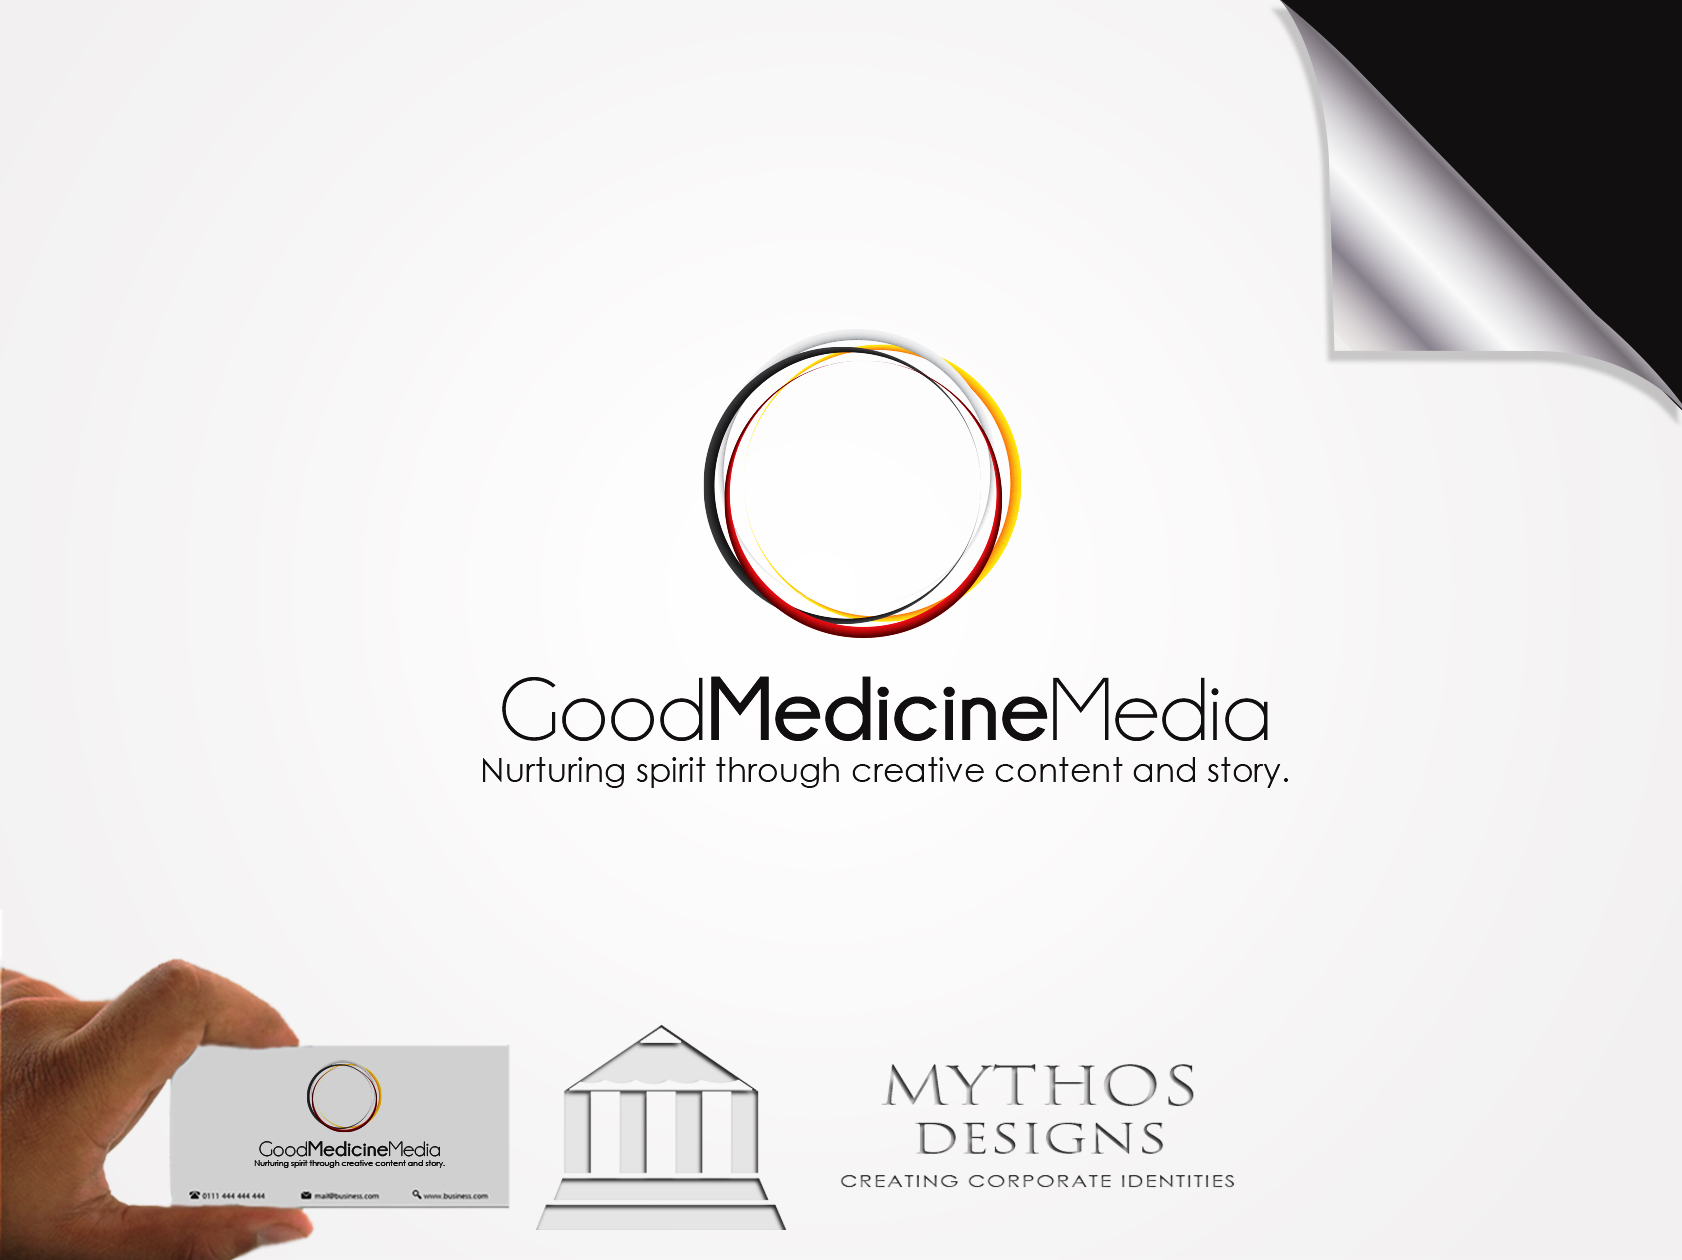 Logo Design by Mythos Designs - Entry No. 249 in the Logo Design Contest Good Medicine Media Logo Design.